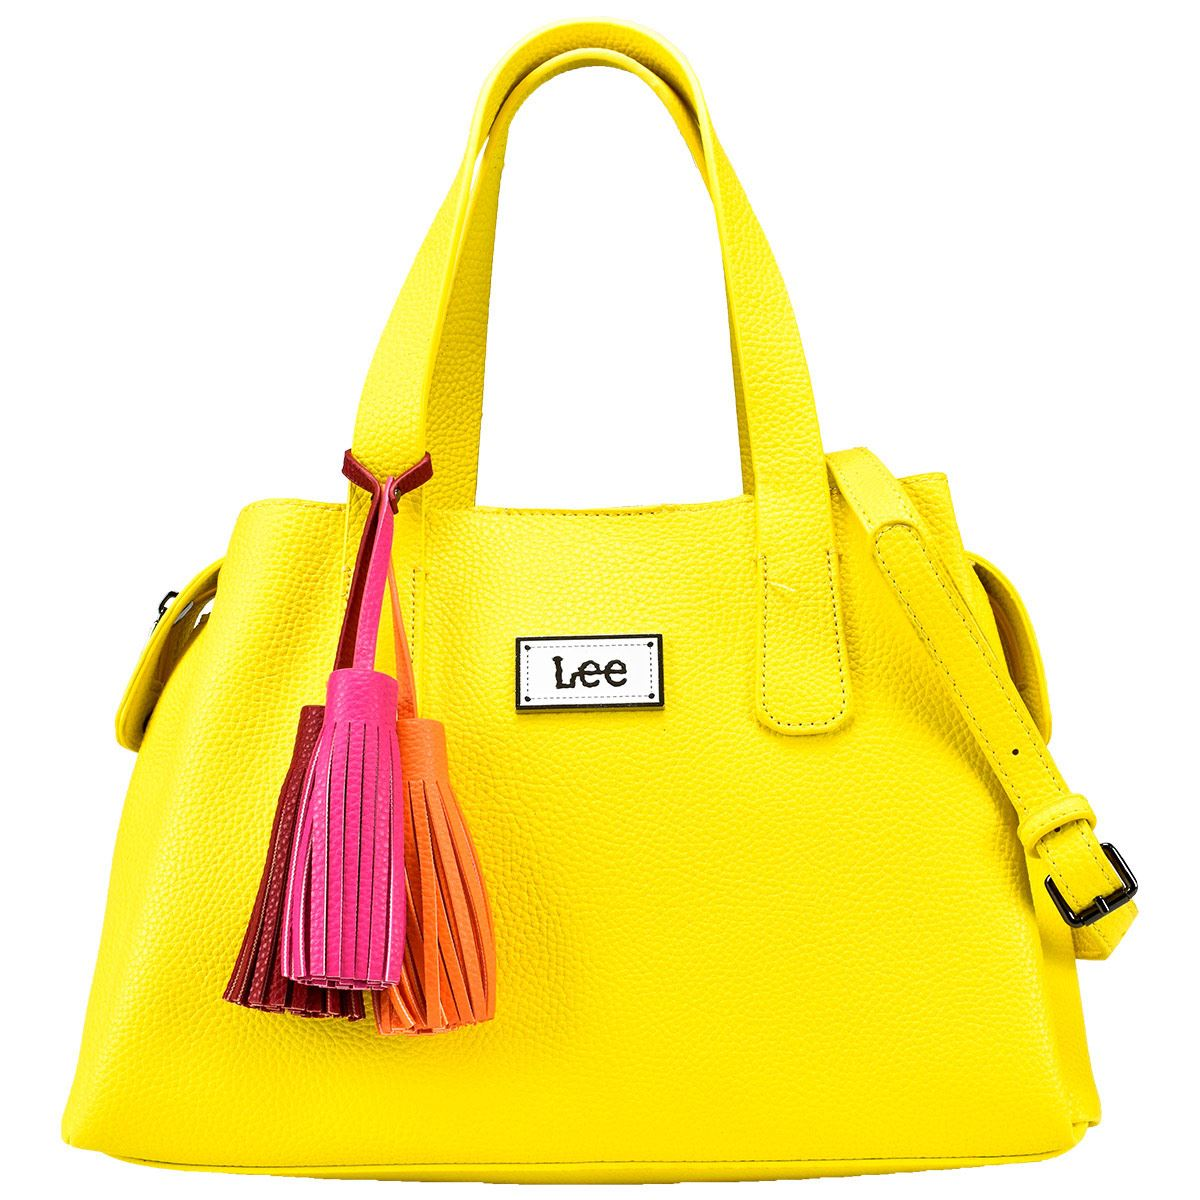 Bolso Bowling Lee Color Amarillo Modelo A01955